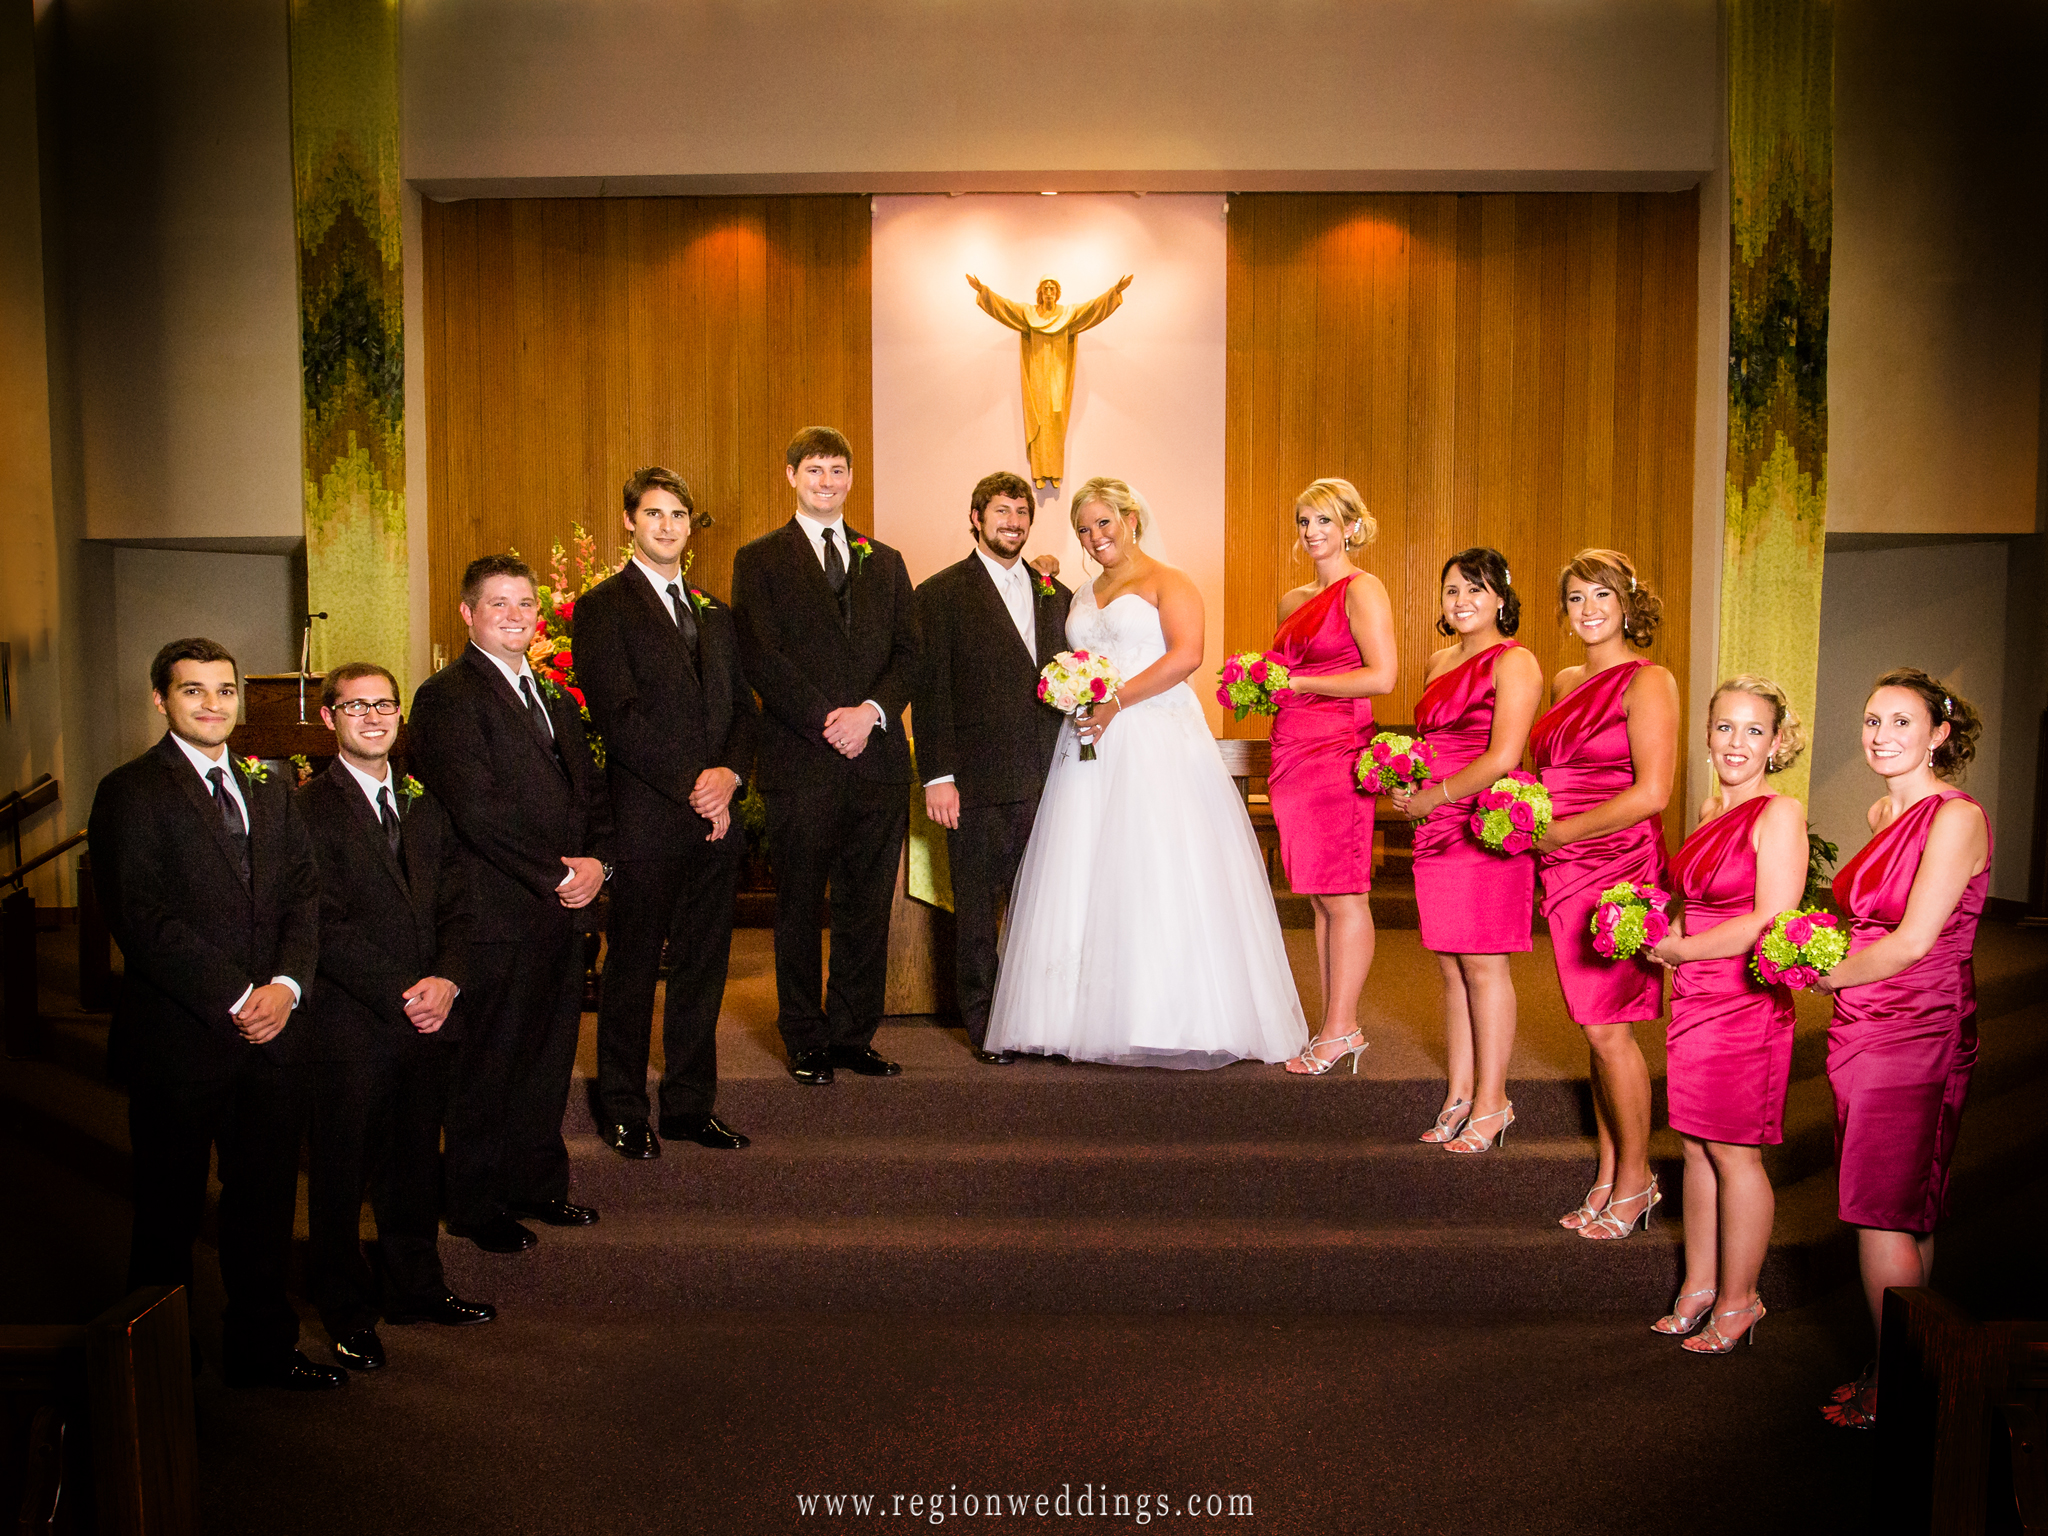 The wedding party group photo at the altar inside of a church in Valparaiso.